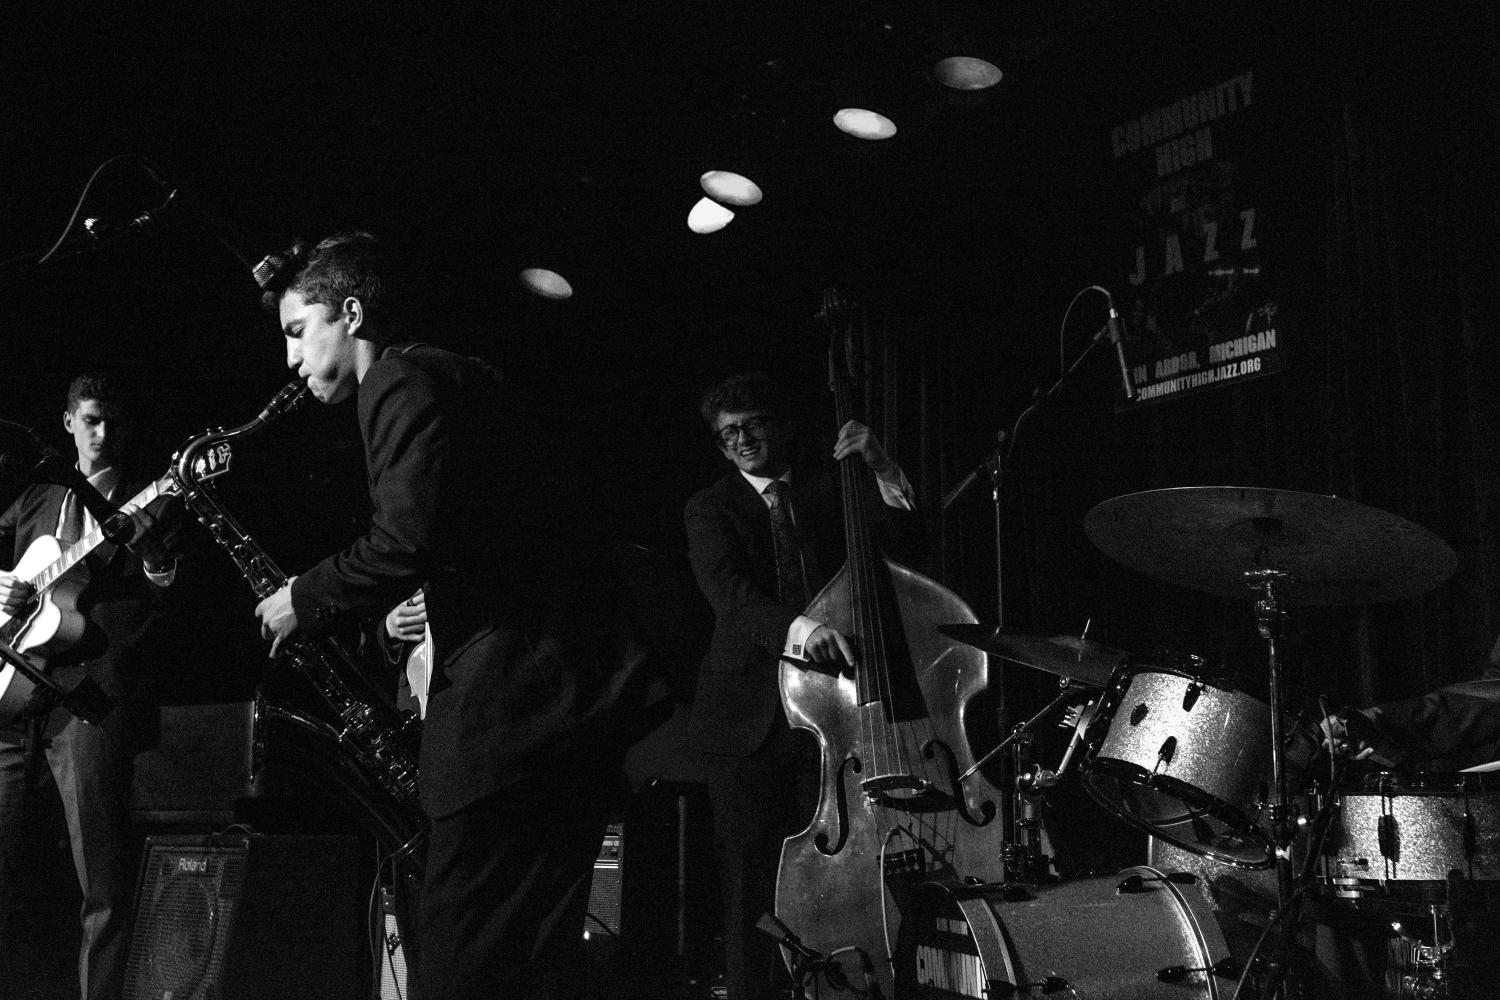 CHS Jazz students perform at The Ark on May 22, 2017. Photos by Alec Redding